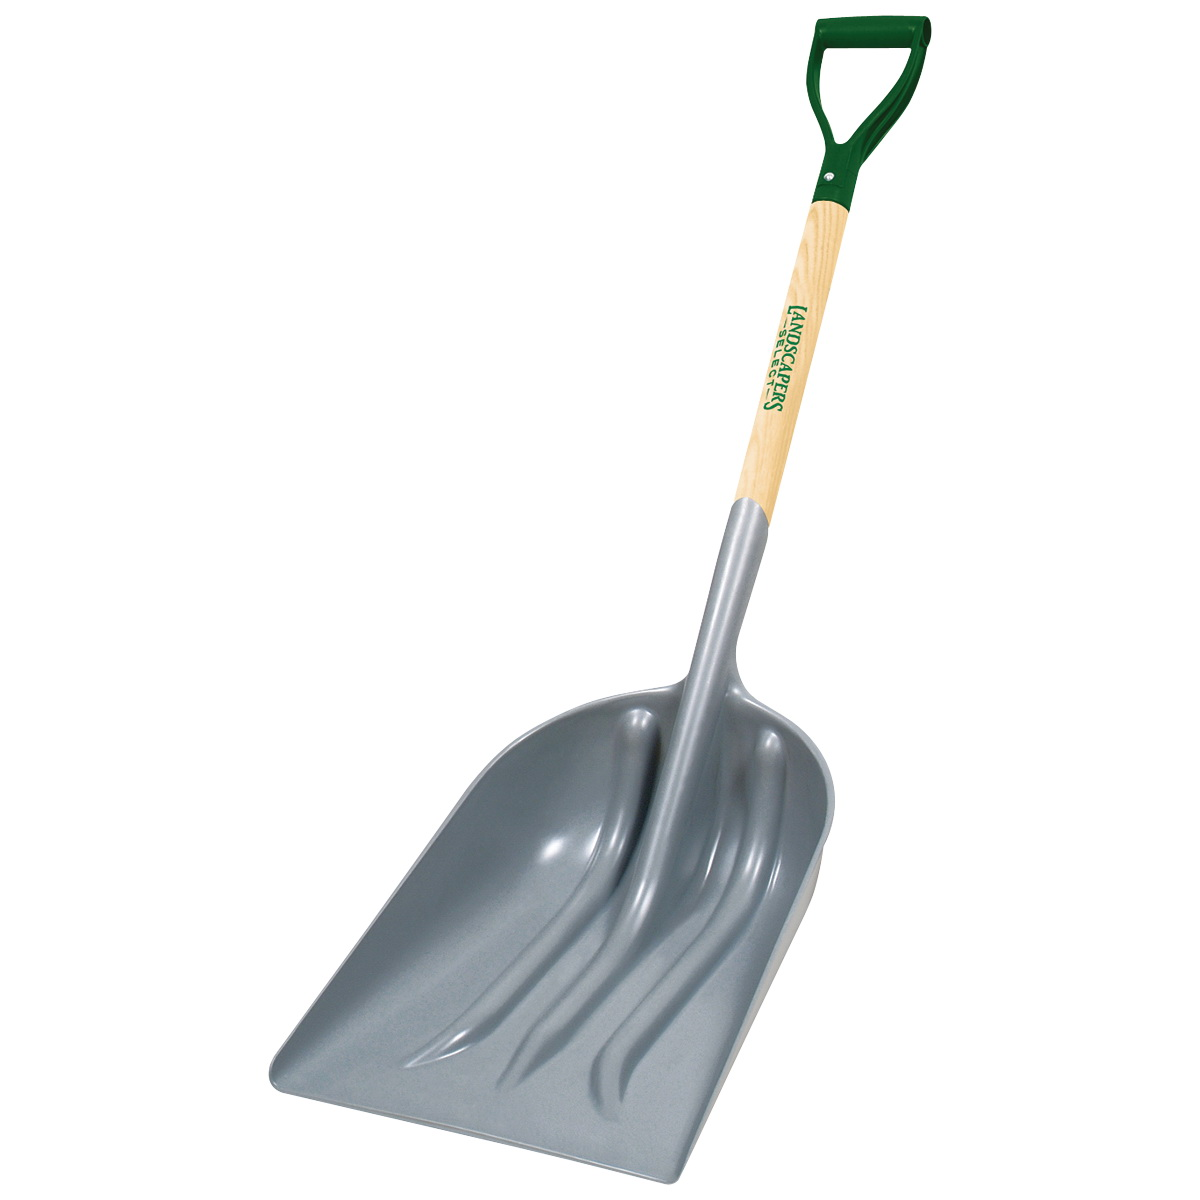 Picture of Landscapers Select 34596 PLA-12 Scoop Shovel, 14-1/4 in W Blade, 12 in L Blade, ABS Blade, Wood Handle